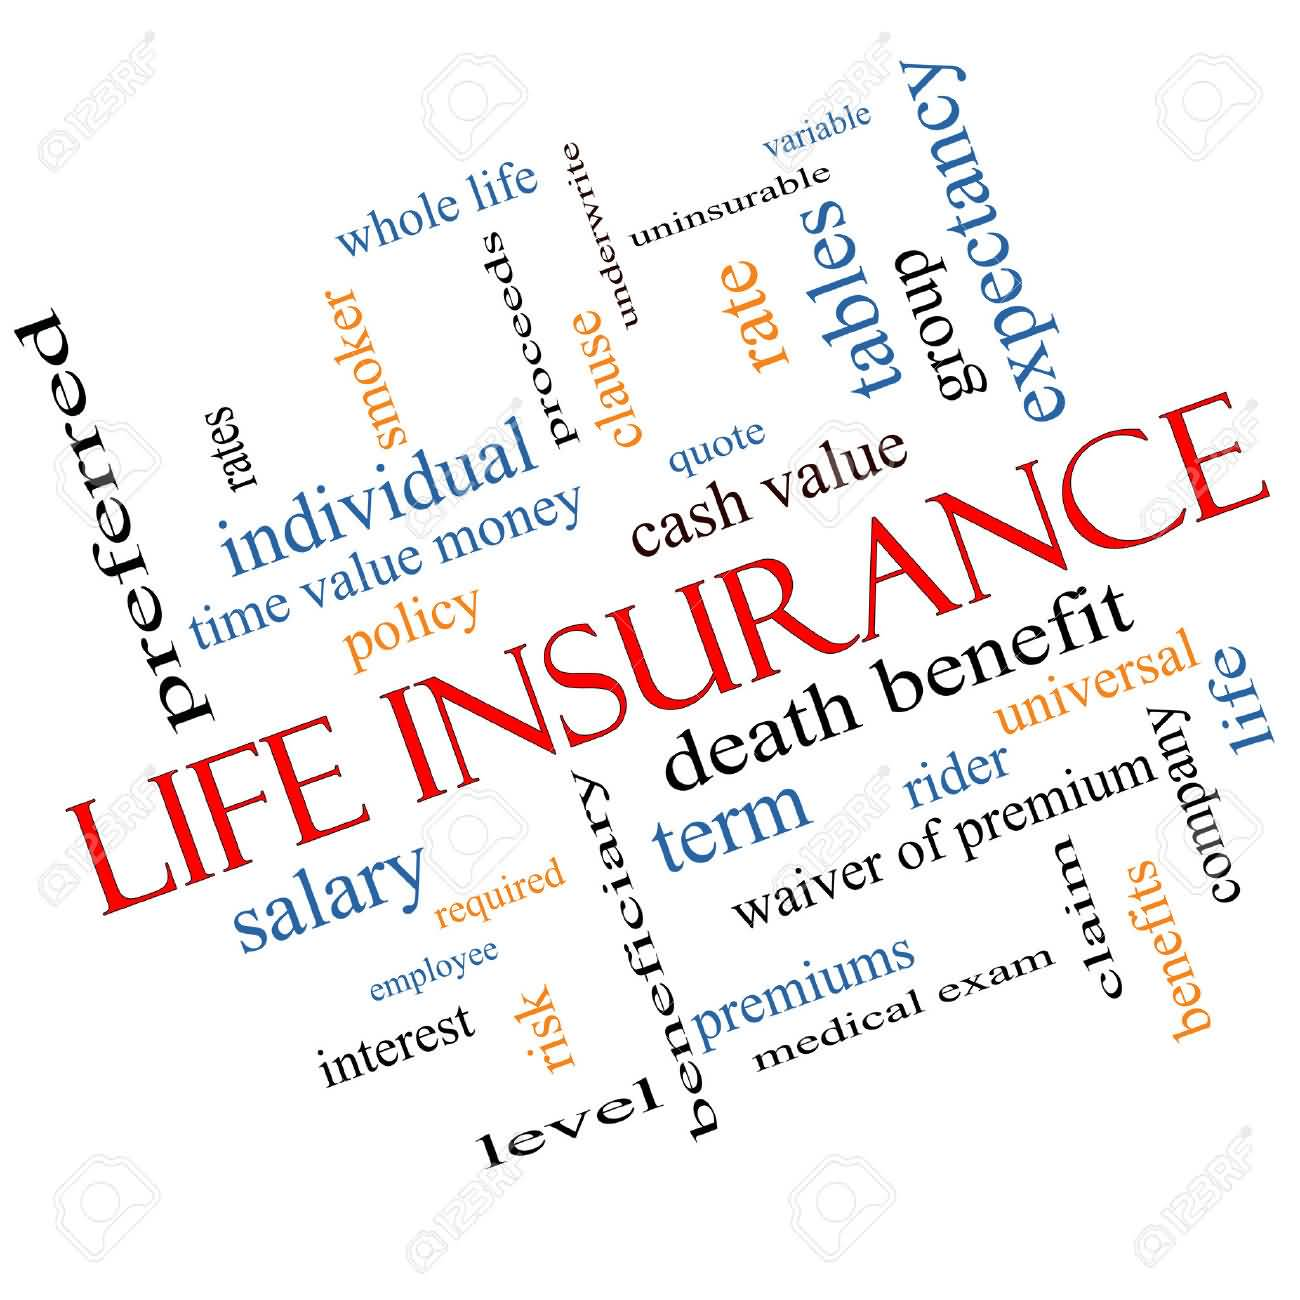 Quote Whole Life Insurance 13